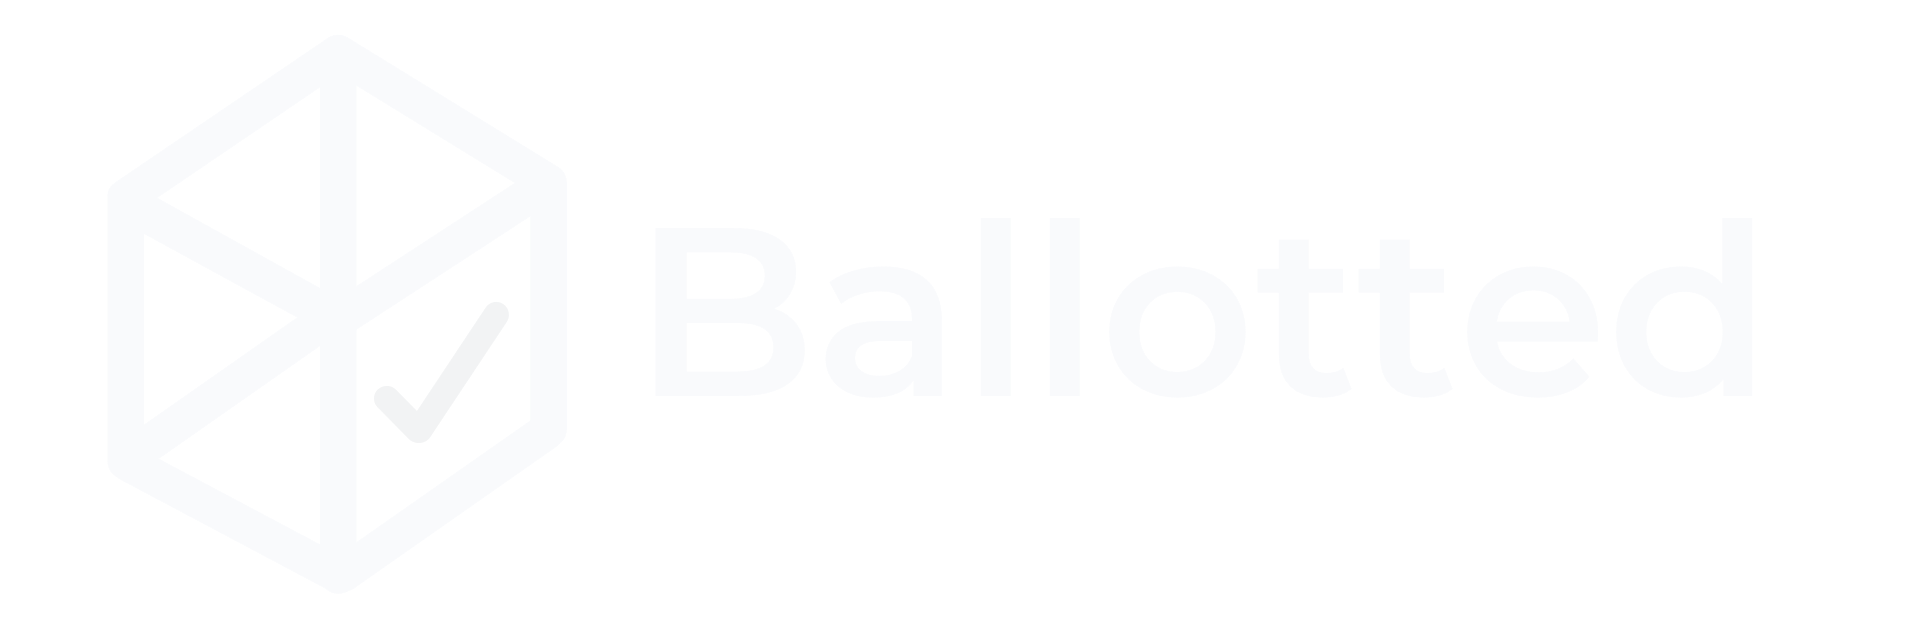 Ballotted